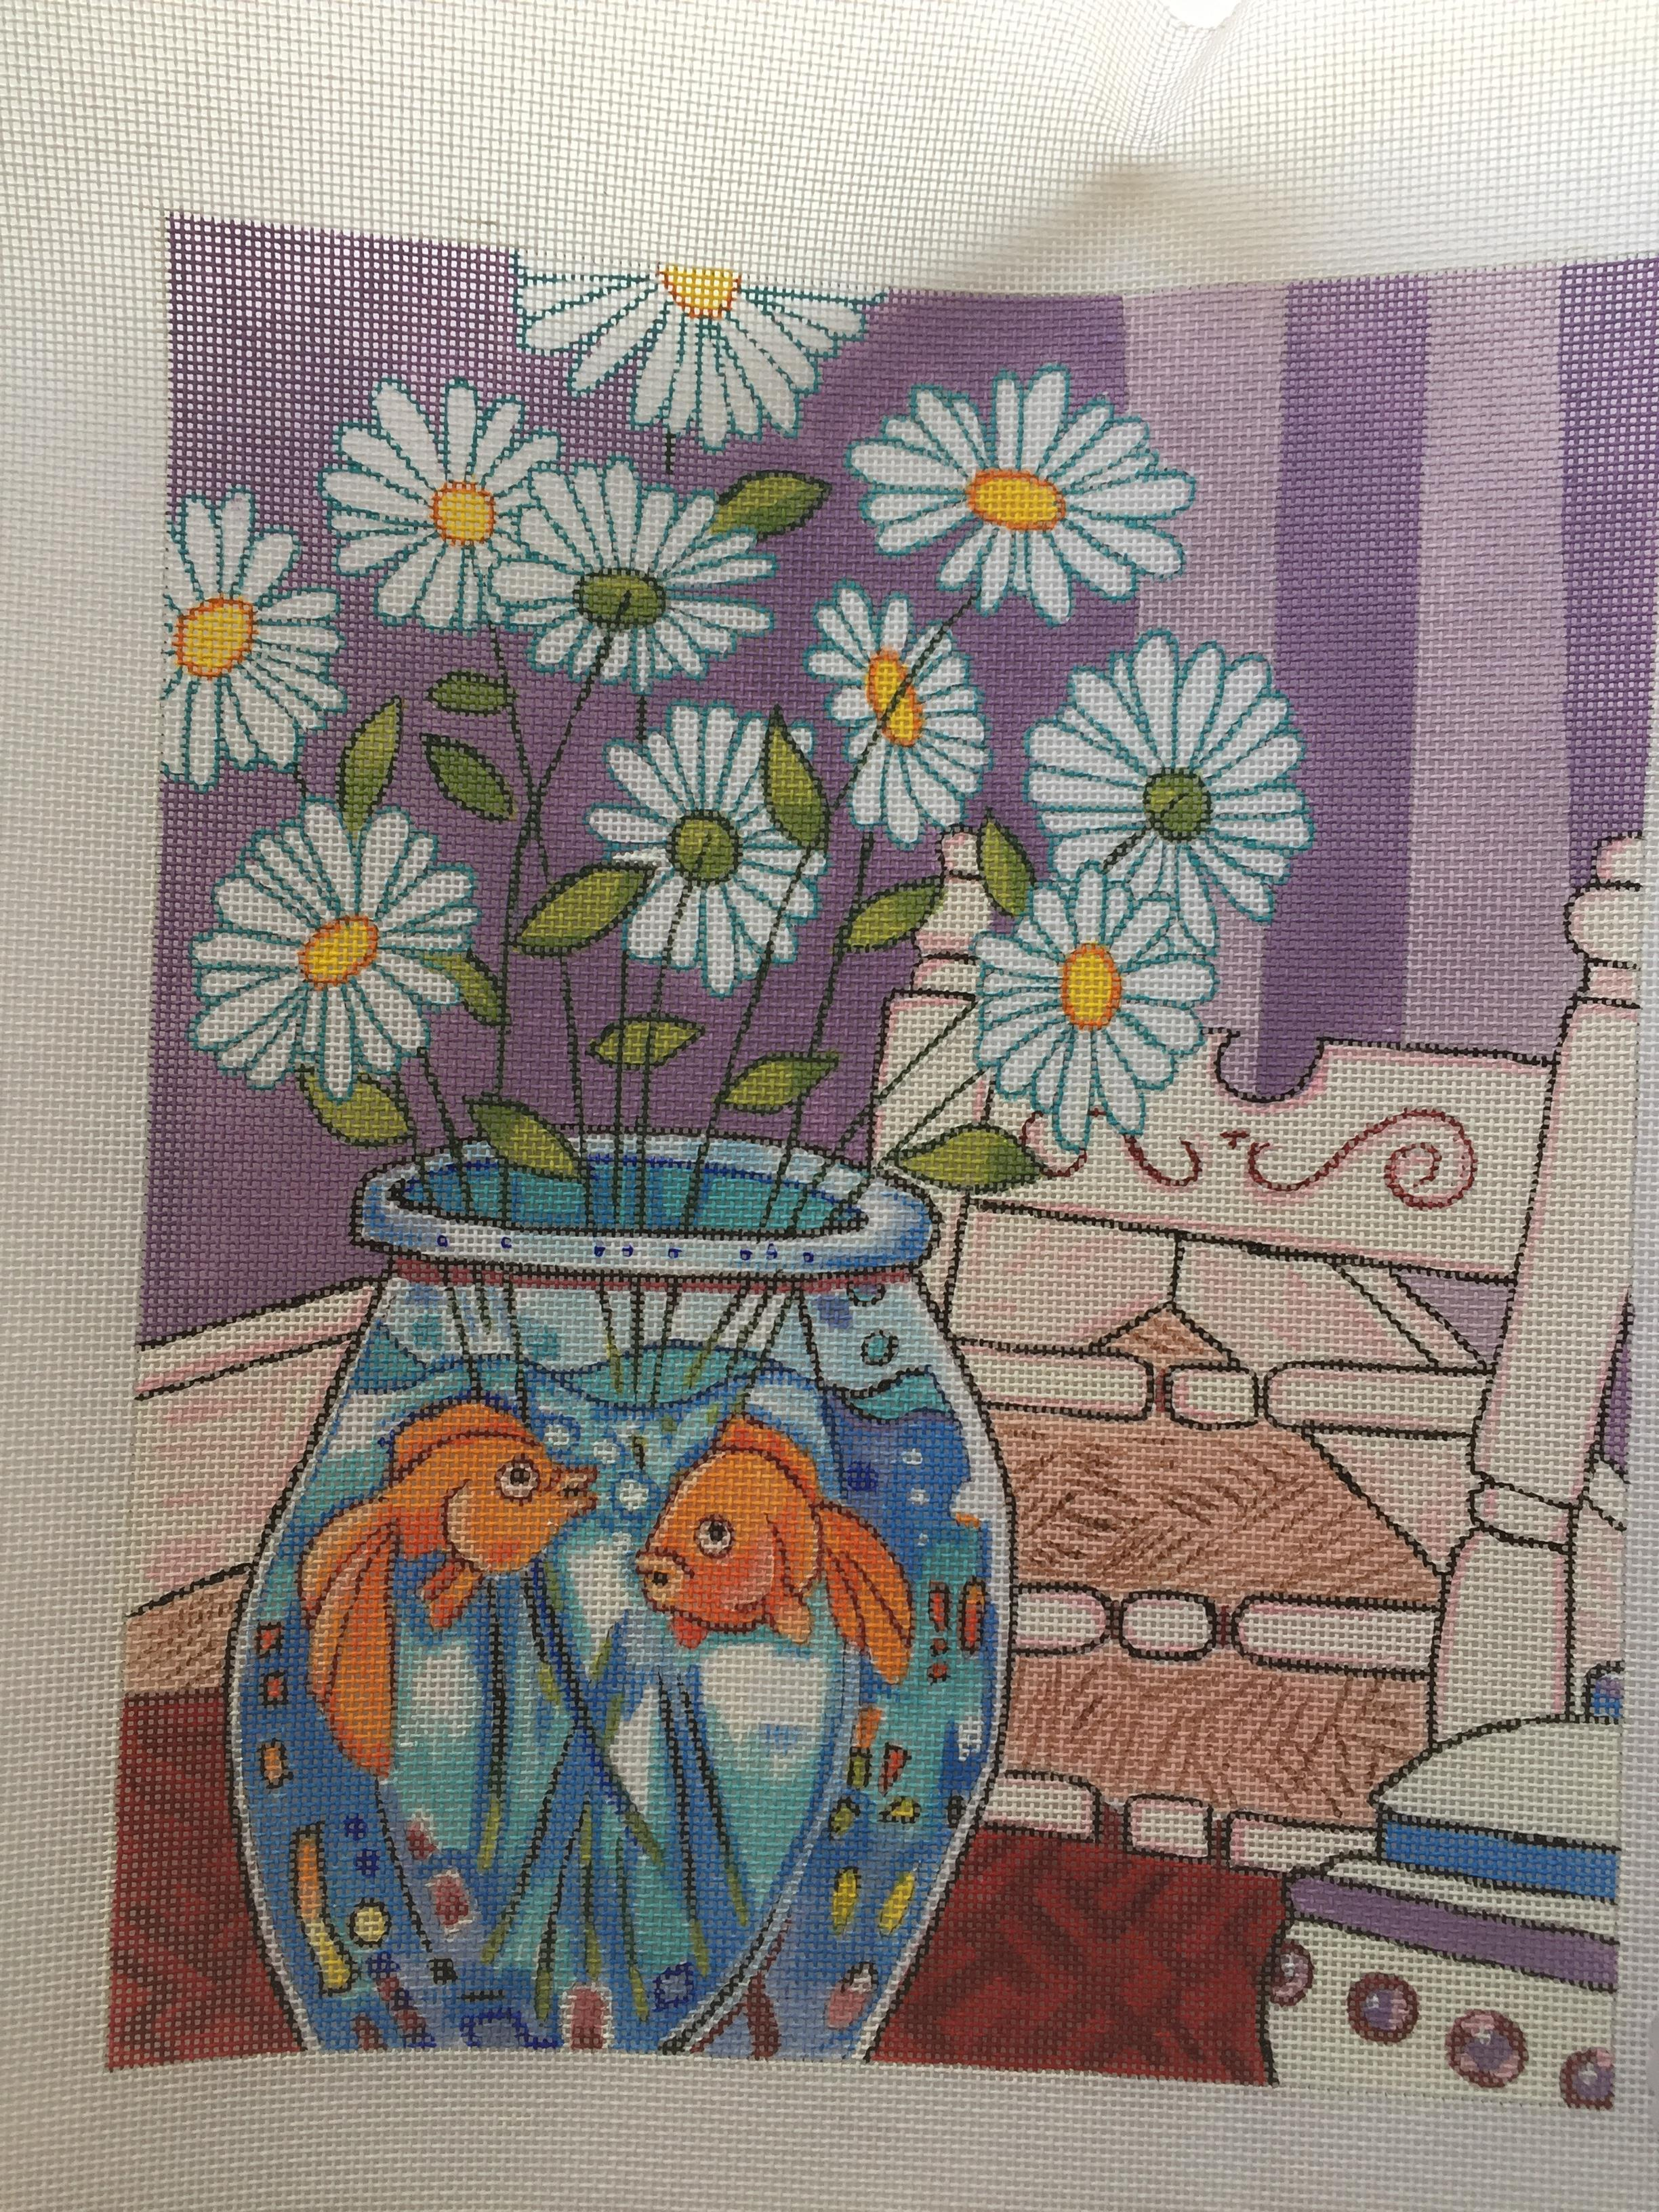 Daisies in a Fishbowl